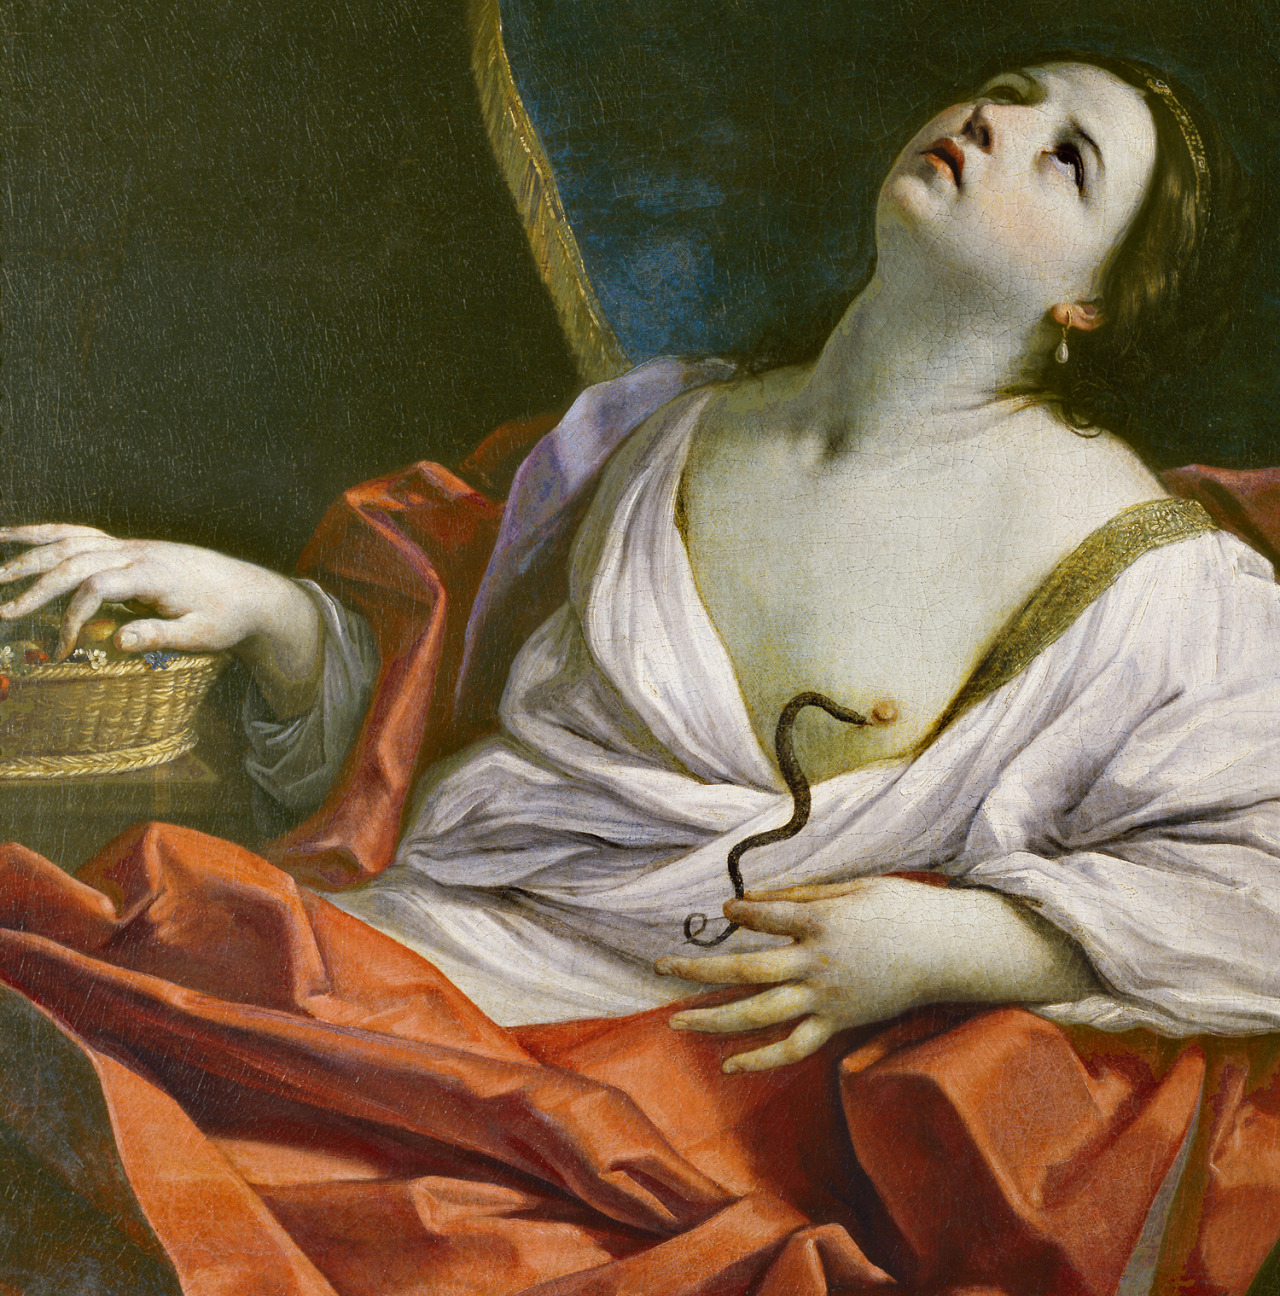 jaded-mandarin:  Guido Reni. Cleopatra, 17th Century.